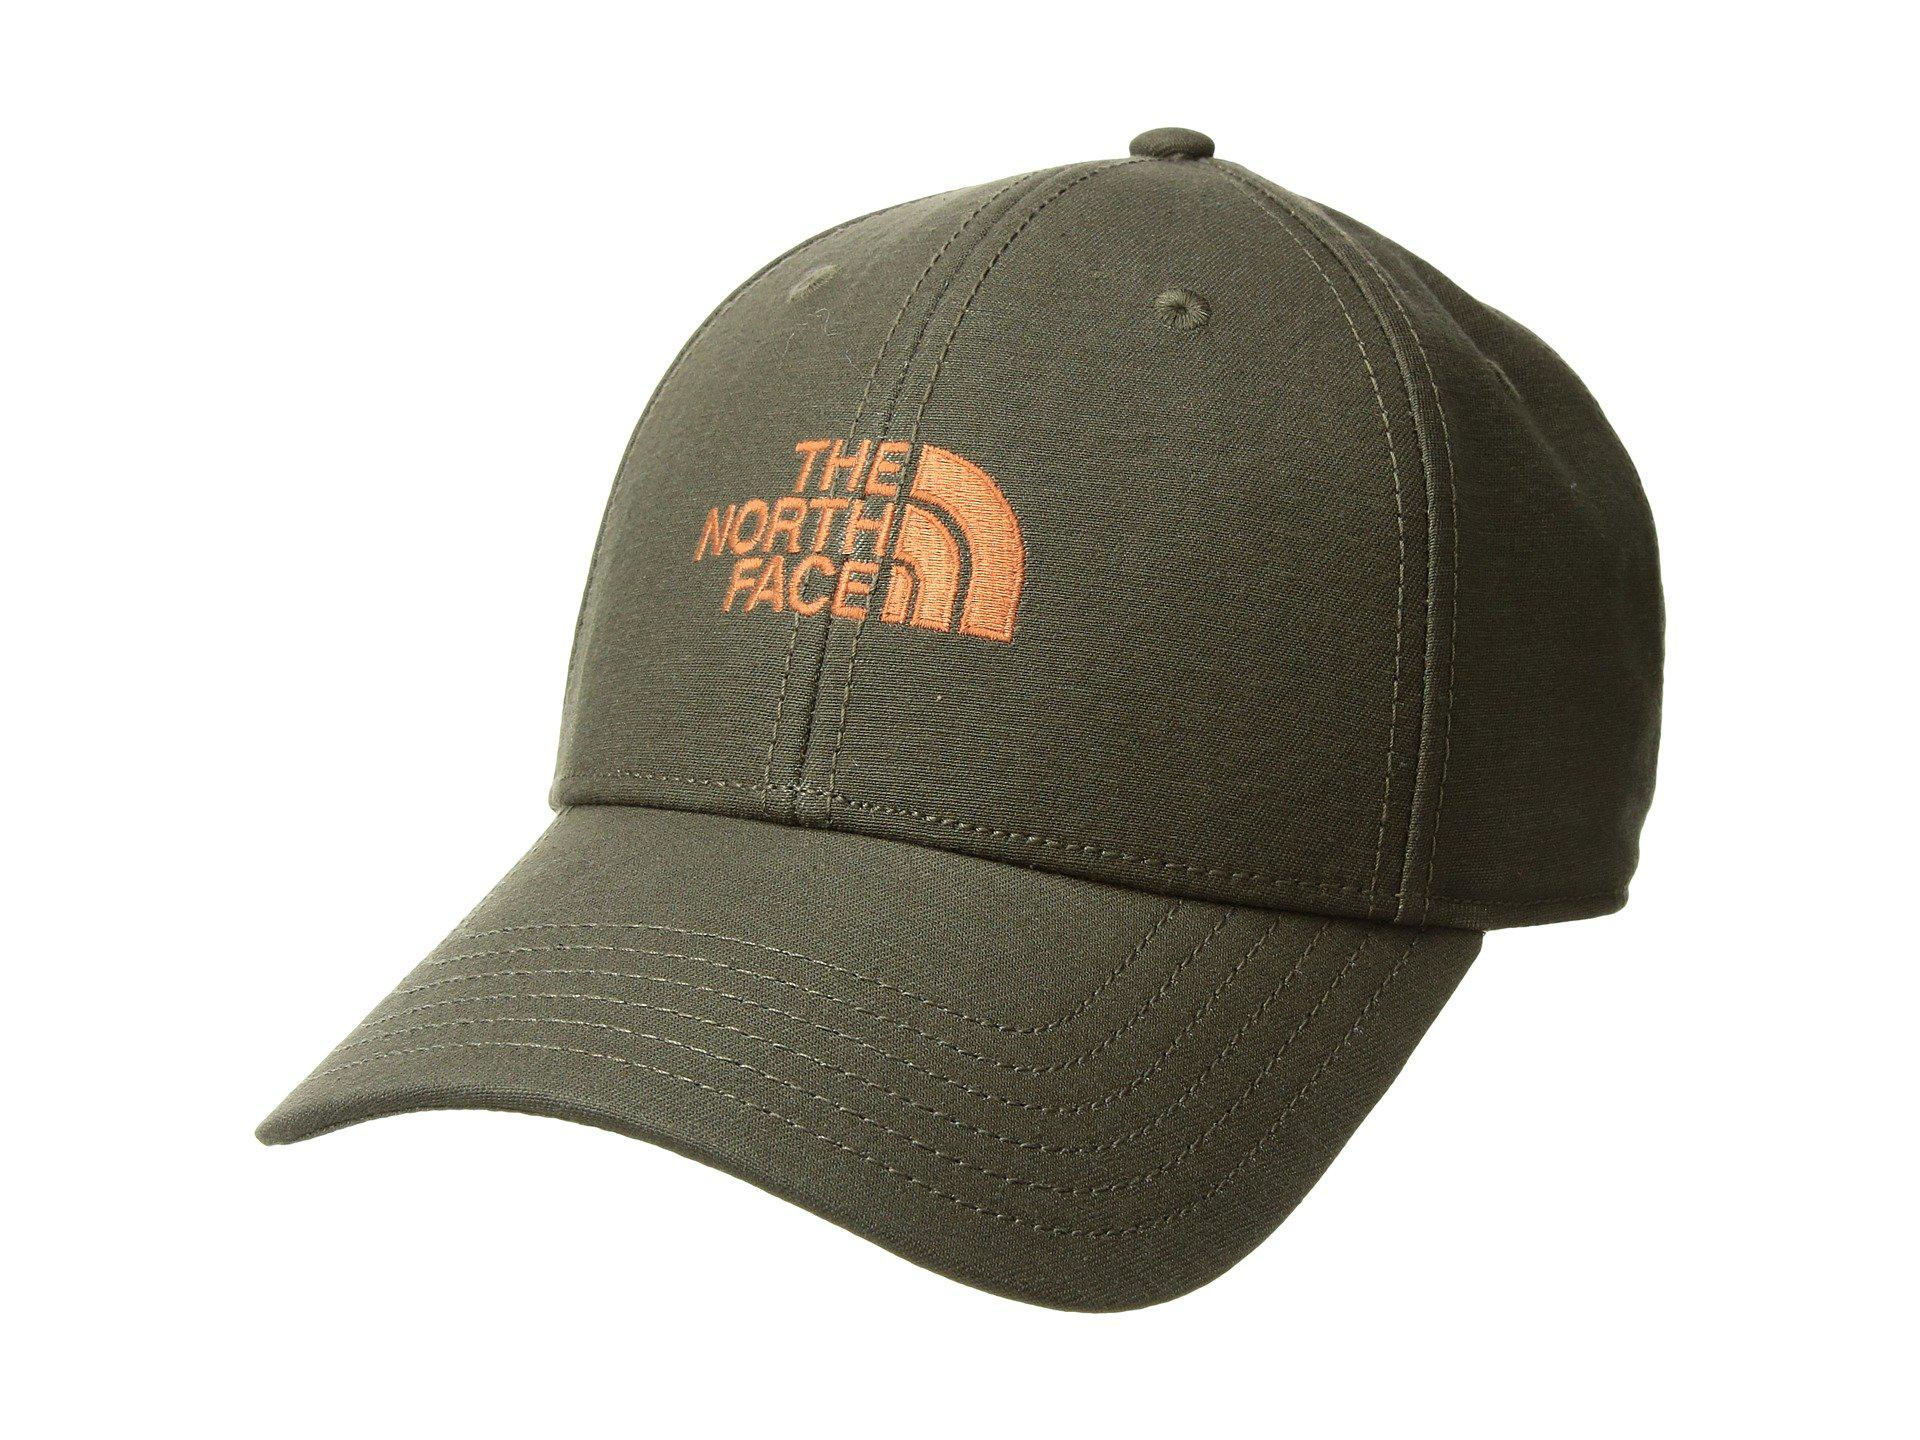 a3b42b672f5 Lyst - The North Face 66 Classic Hat in Green for Men